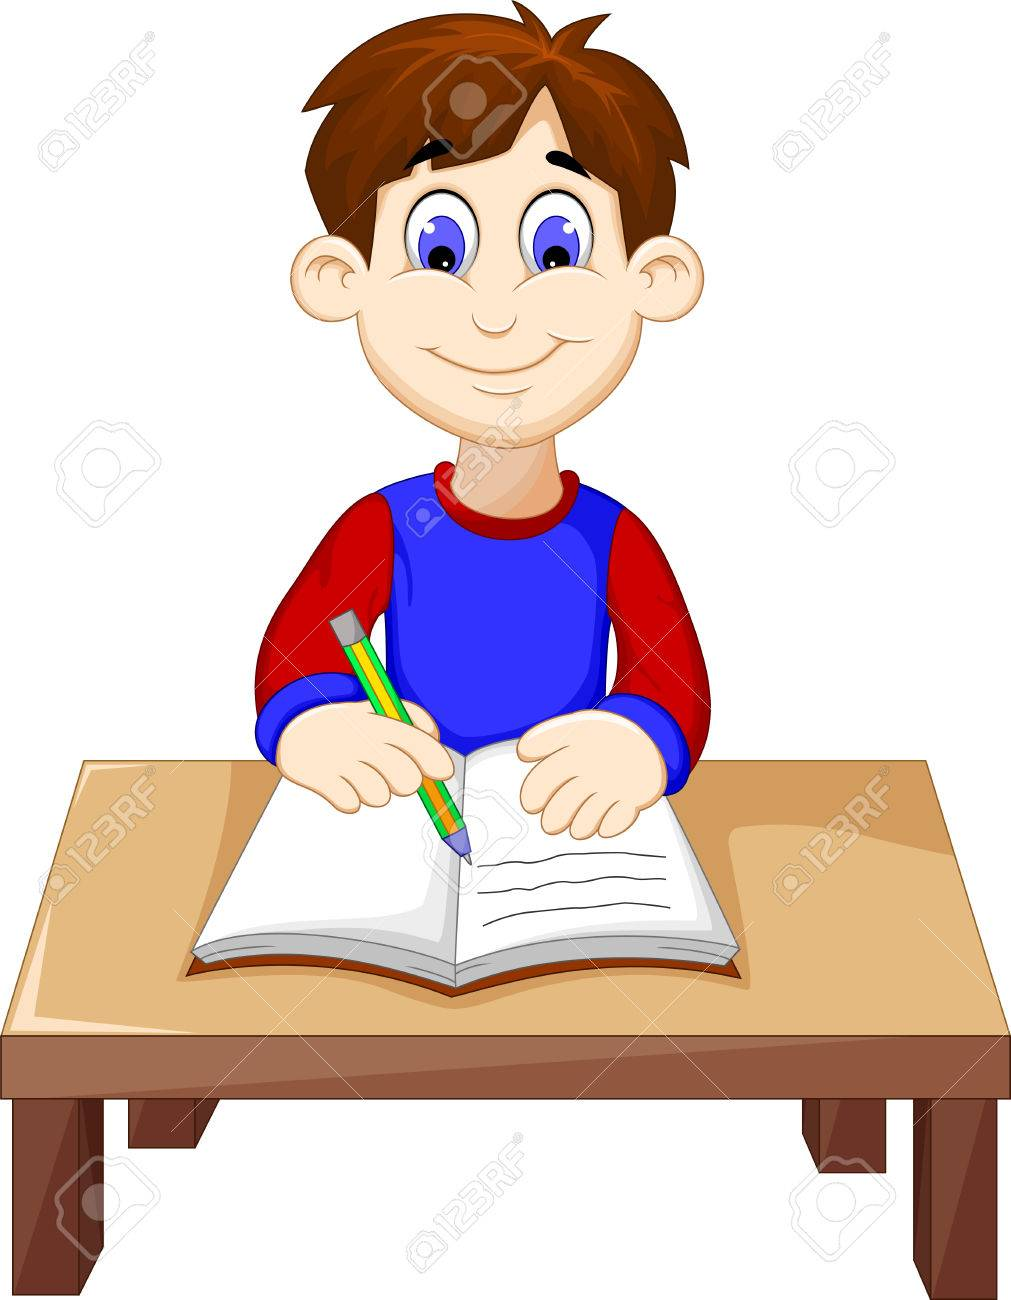 Funny Boy Cartoon Writing Above A Desk Royalty Free Cliparts Vectors And Stock Illustration Image 65839197